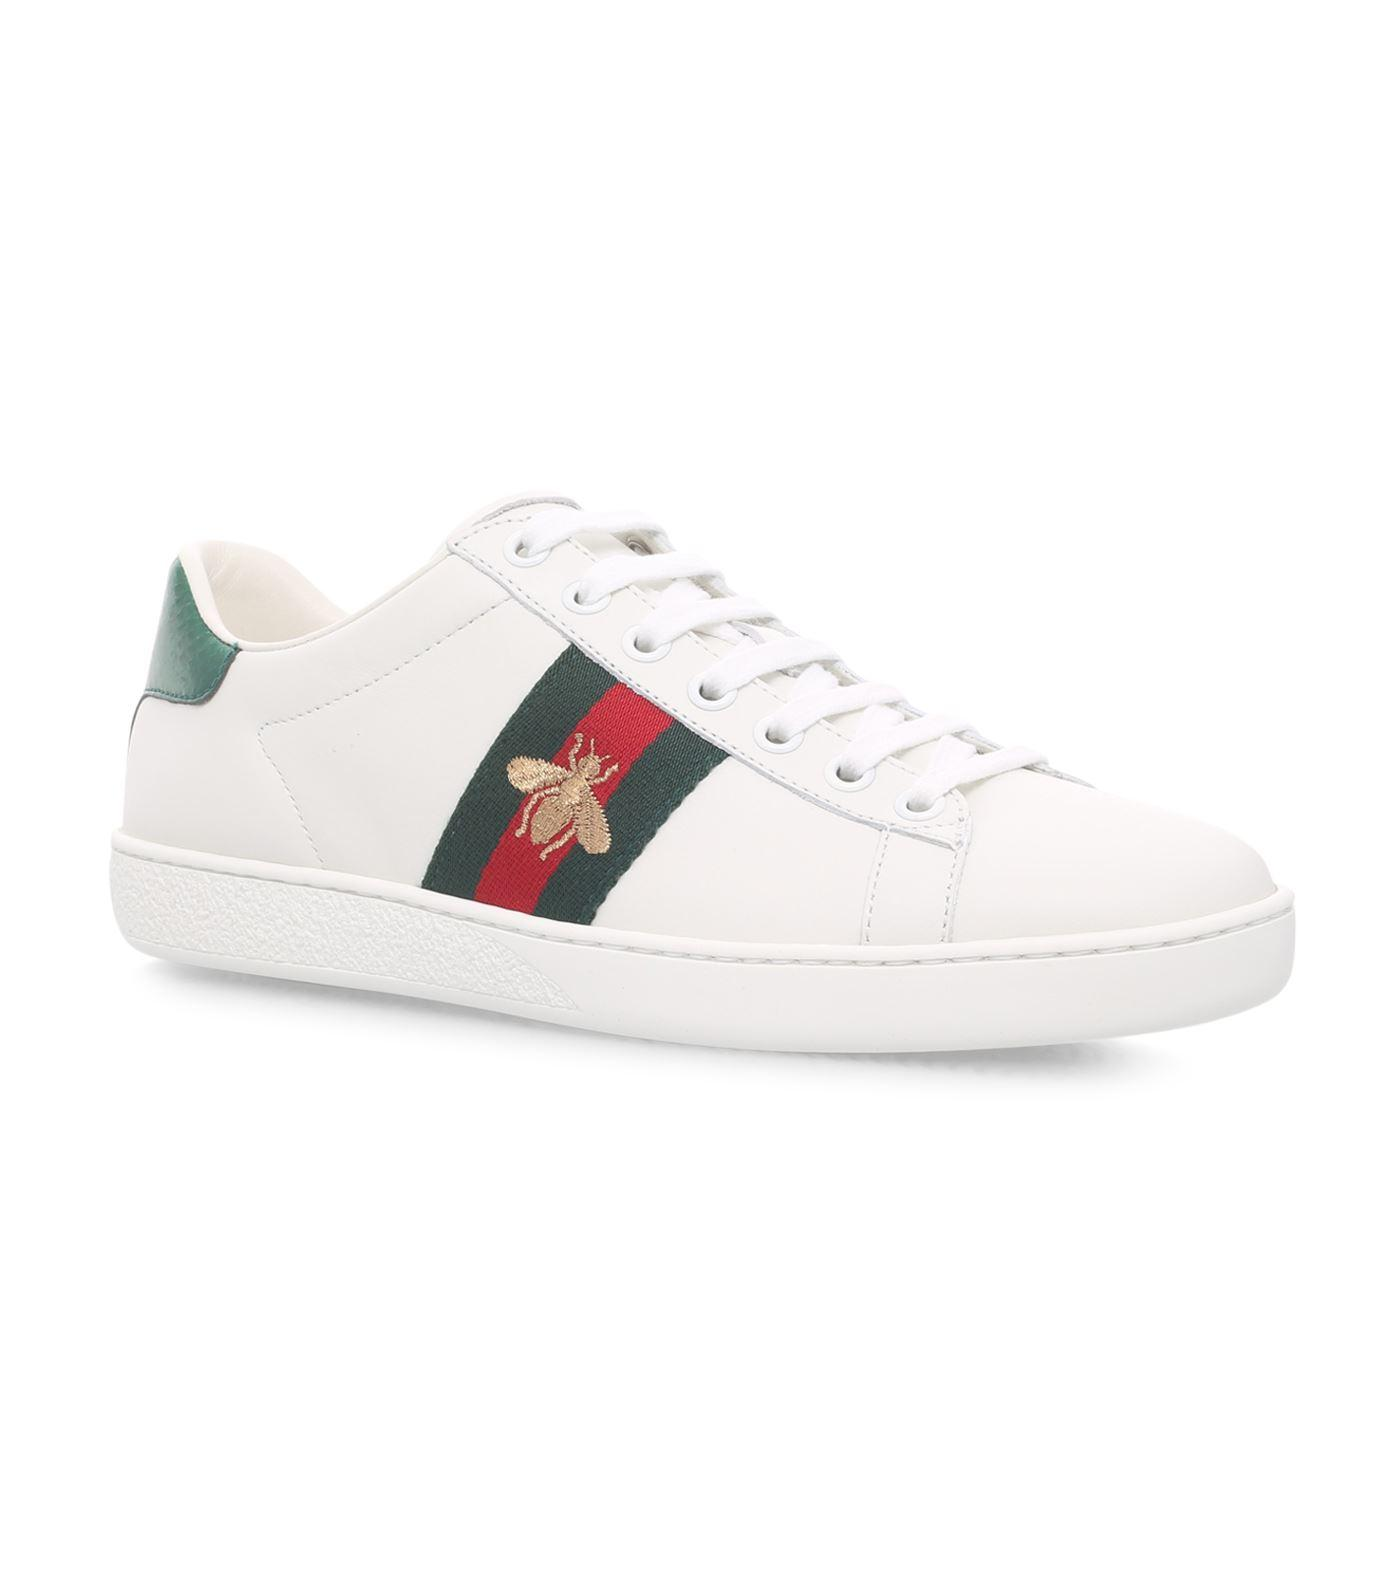 beffd21f8f5 Gucci - White New Ace Bee Low Sneakers - Lyst. View fullscreen